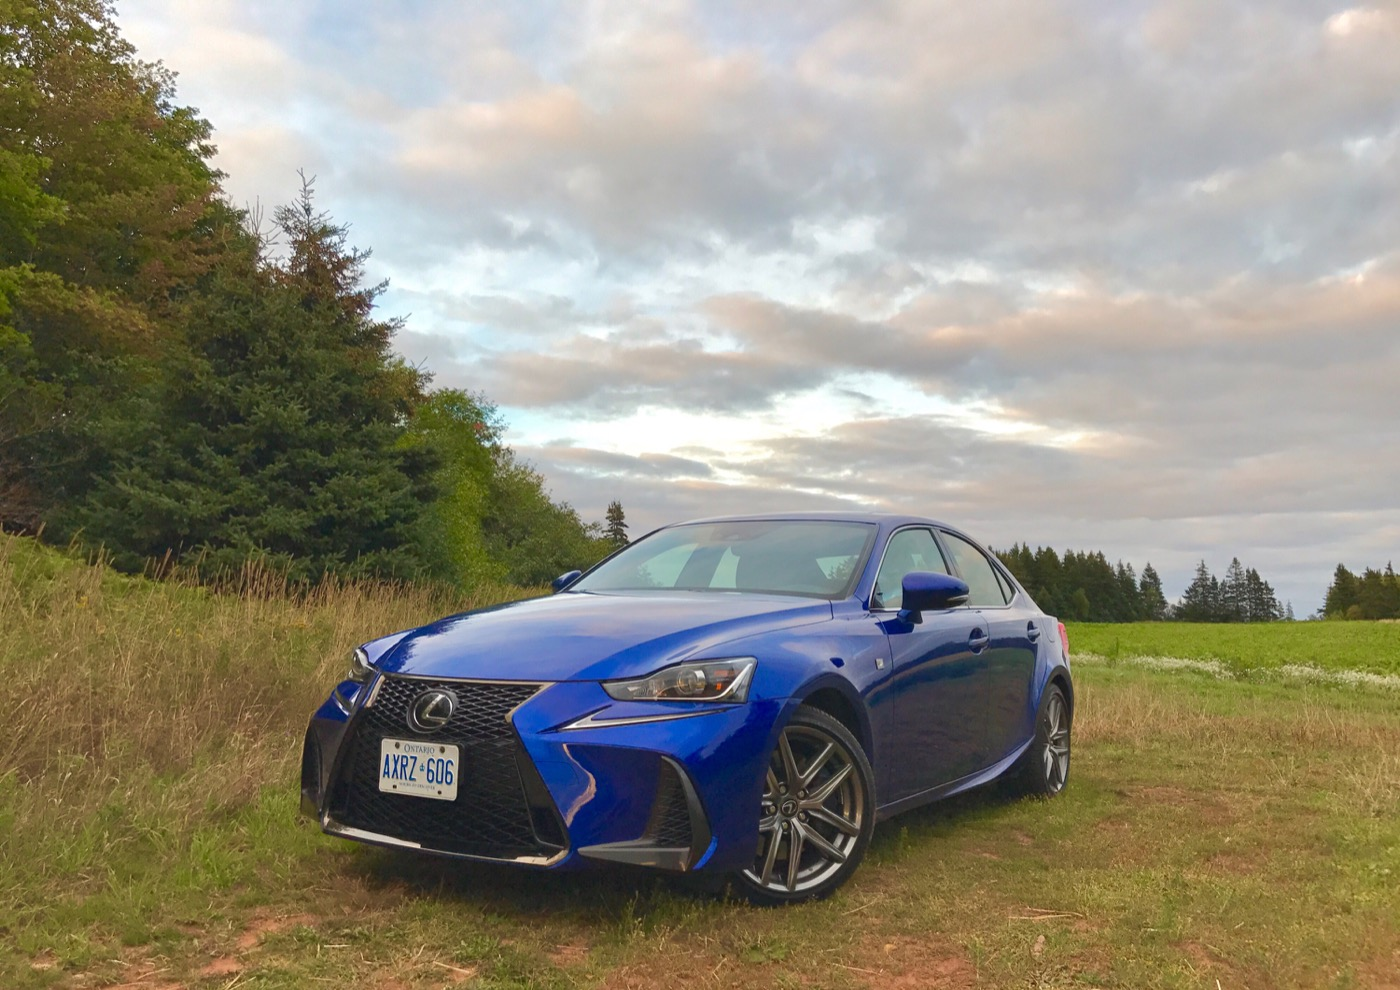 2017 Lexus IS350 Review – Give Love One More Chance